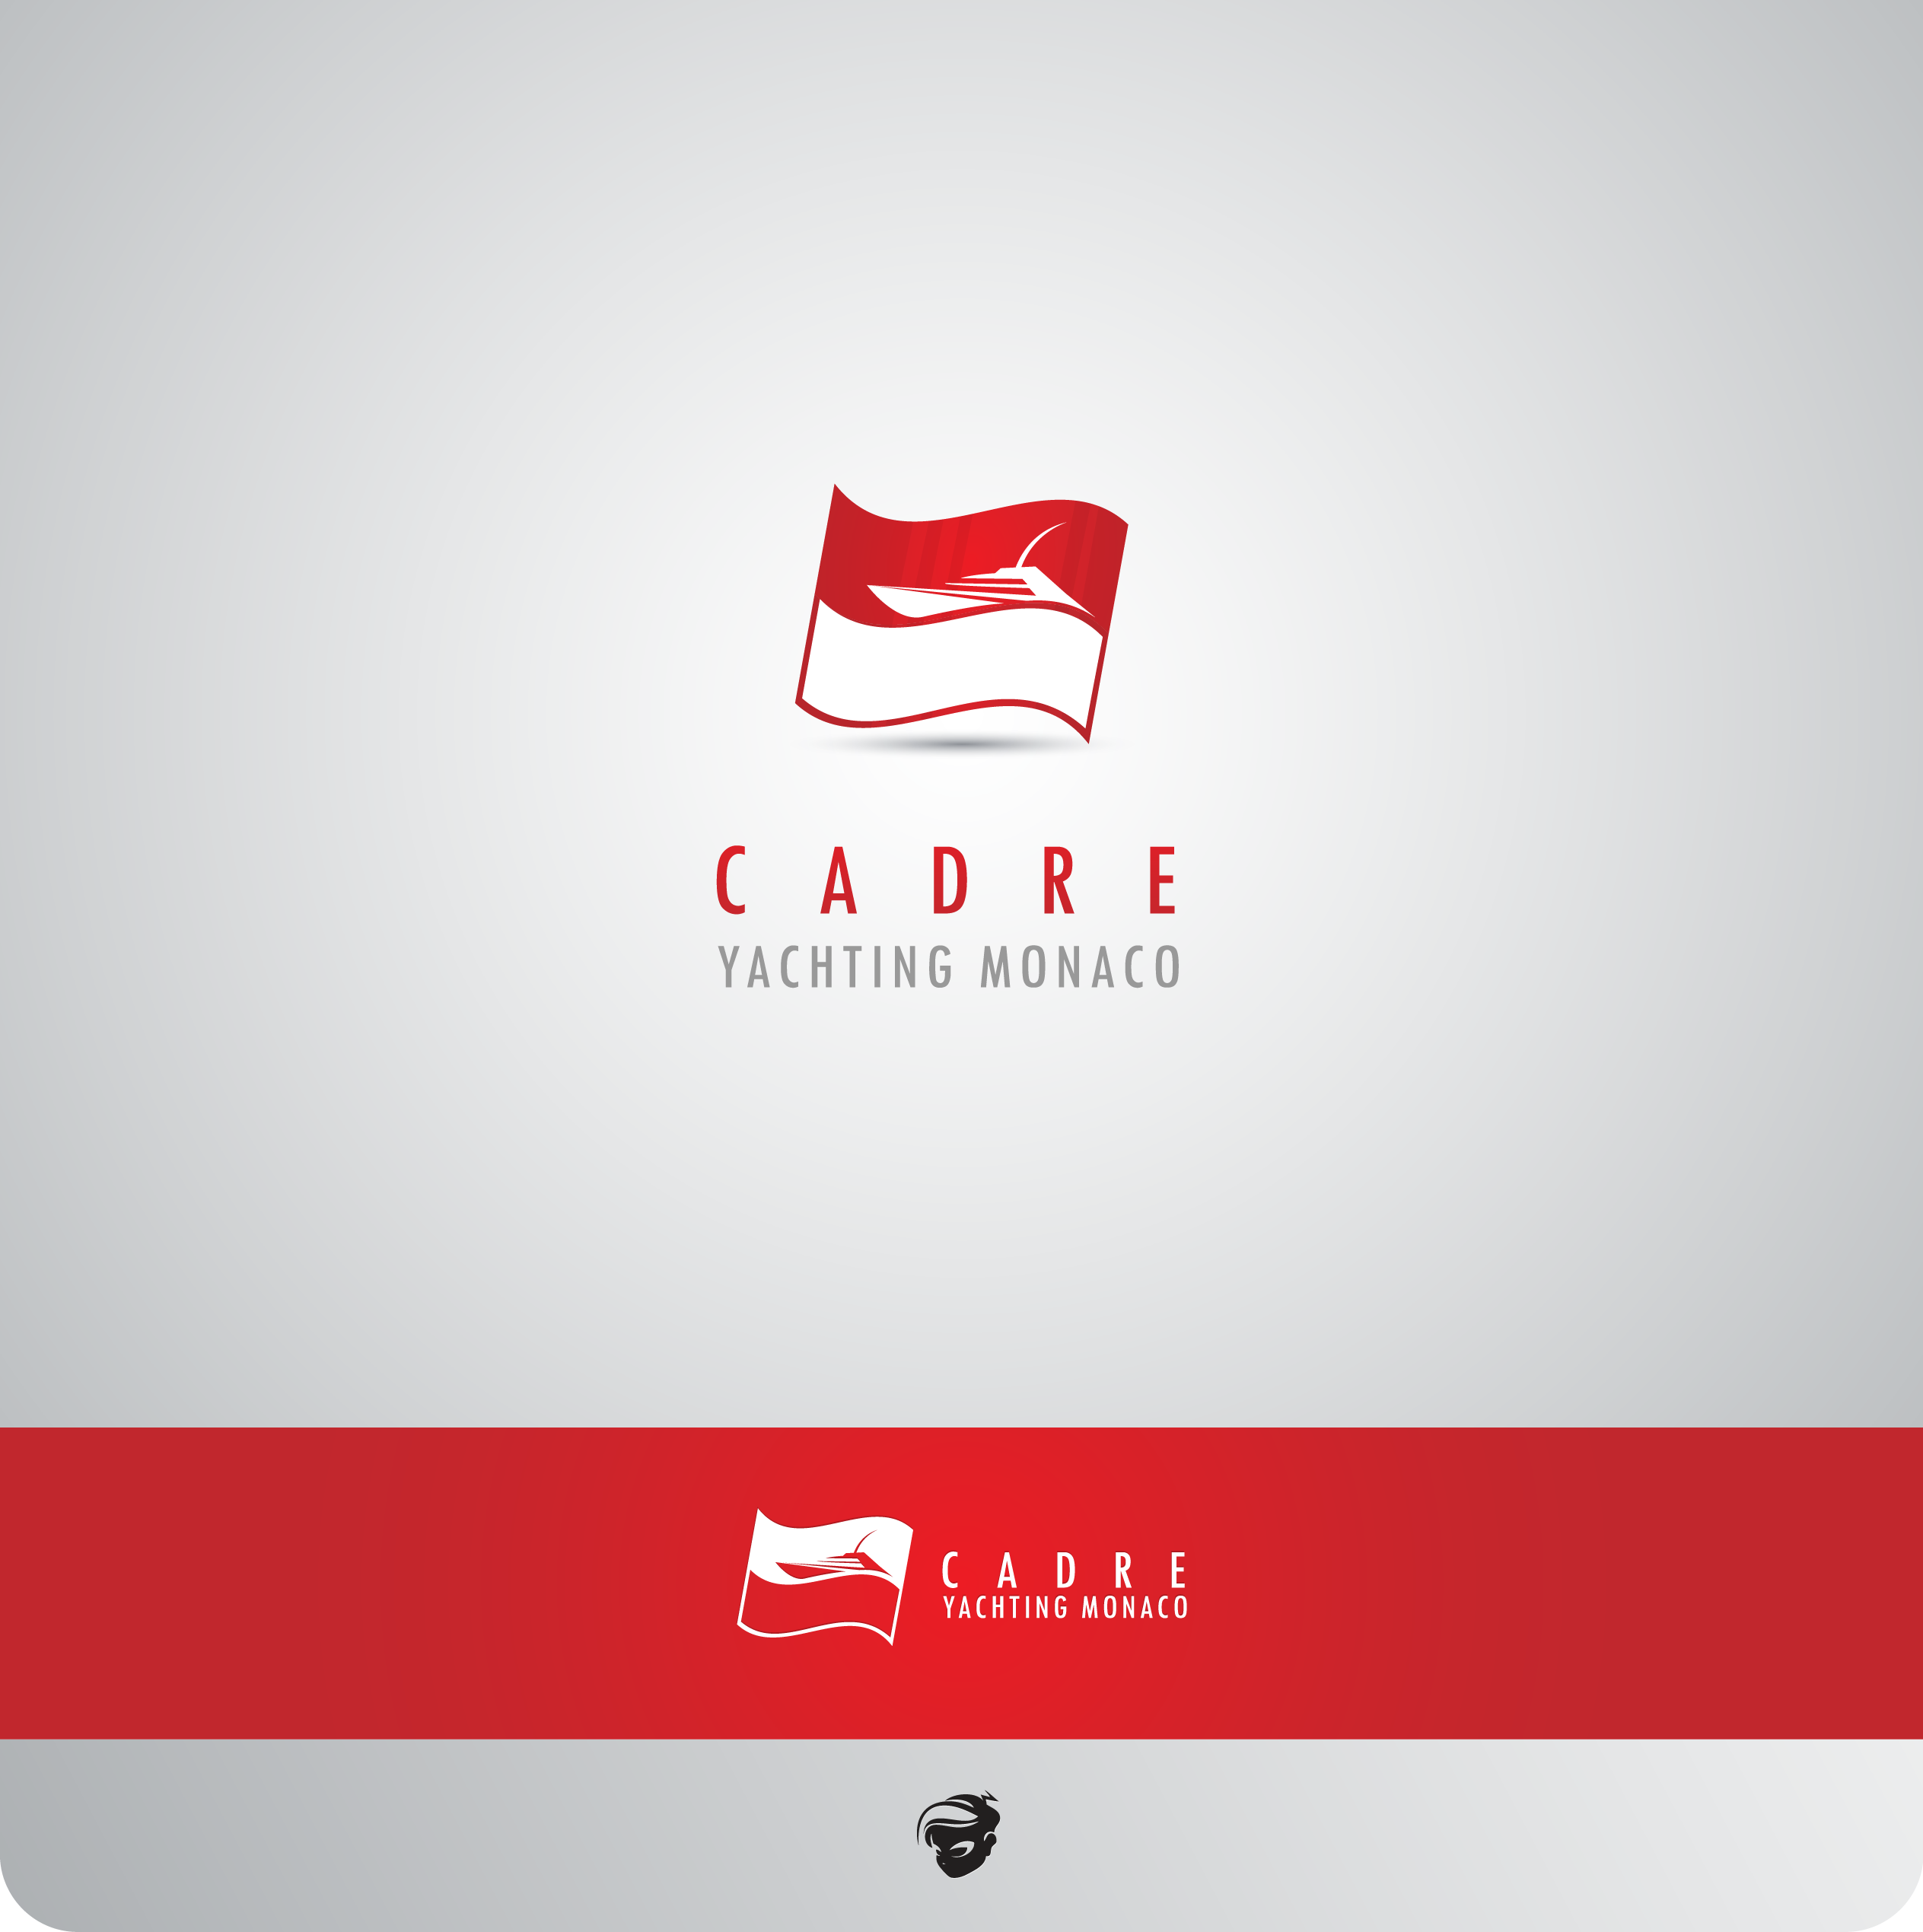 Logo Design by zesthar - Entry No. 407 in the Logo Design Contest New Logo Design for Cadre Yachting Monaco.